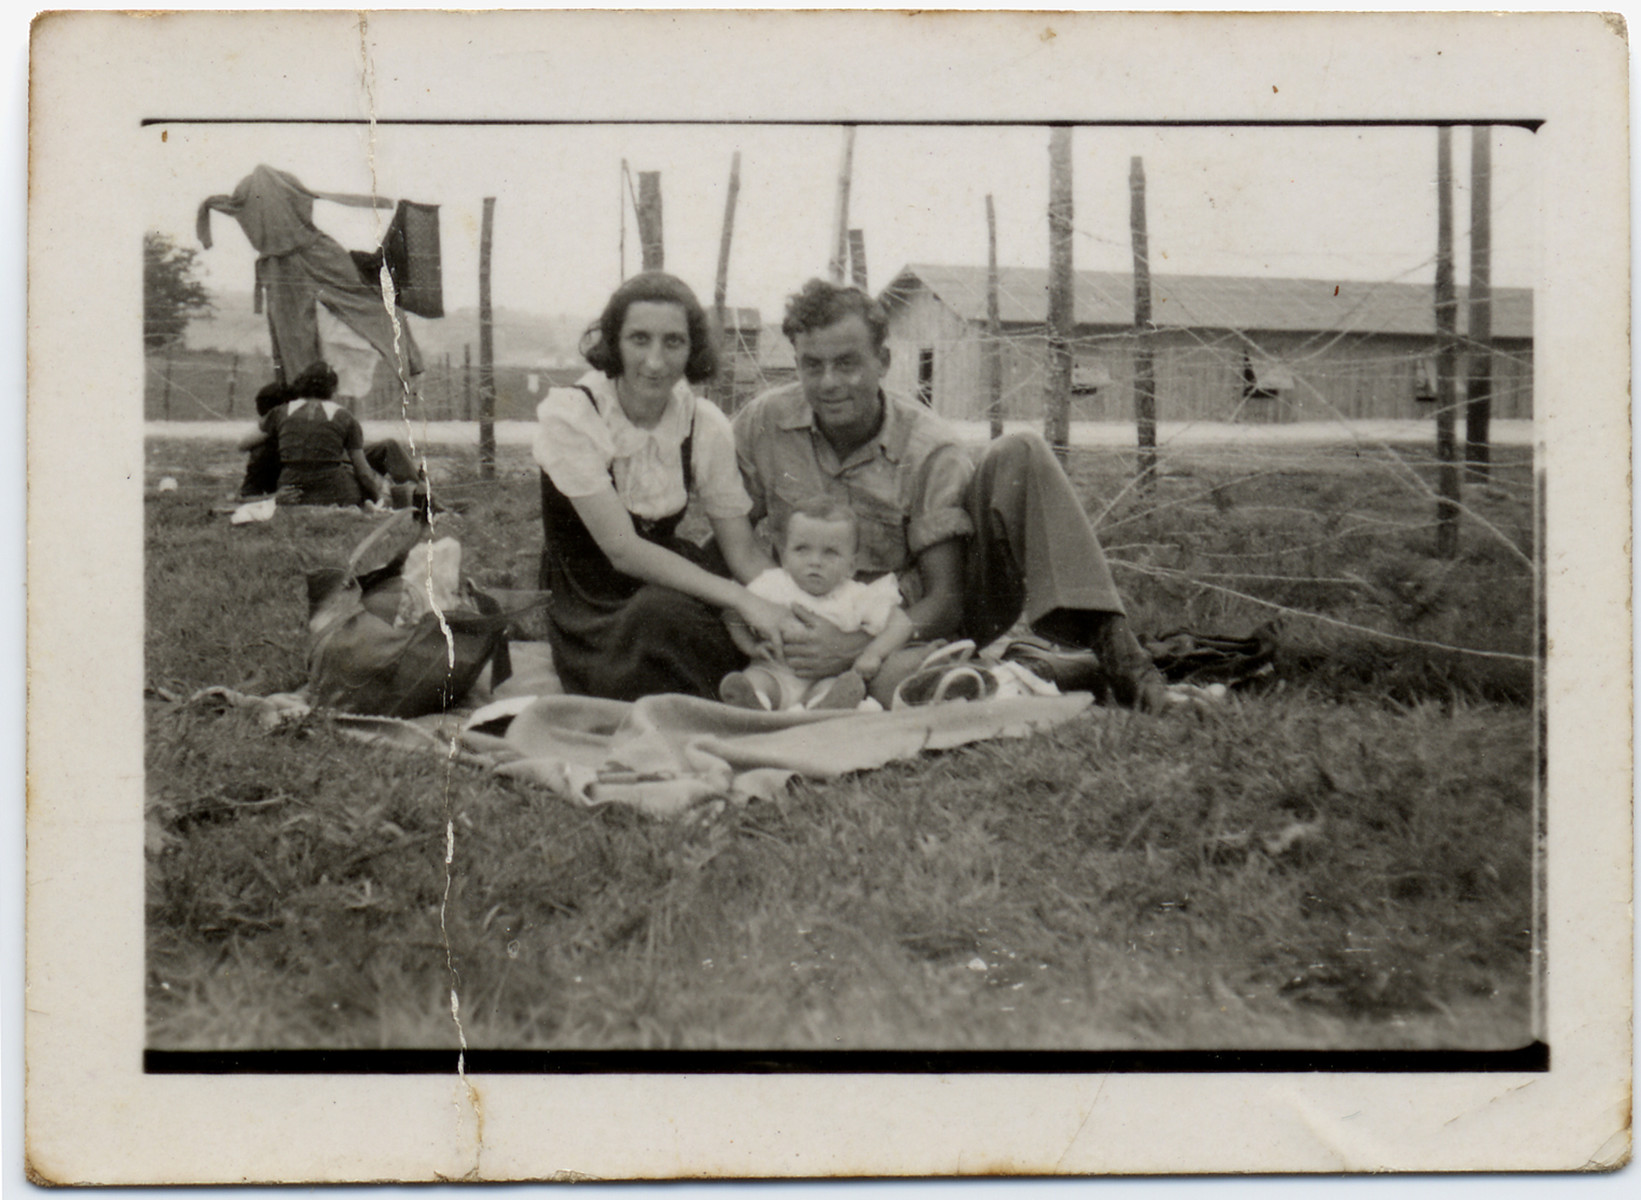 A couple with their young child sits on the grass near the barbed wire fence of the Gurs internment camp.   Pictured are Tonia and Sioma Lechtman with their baby Vera.